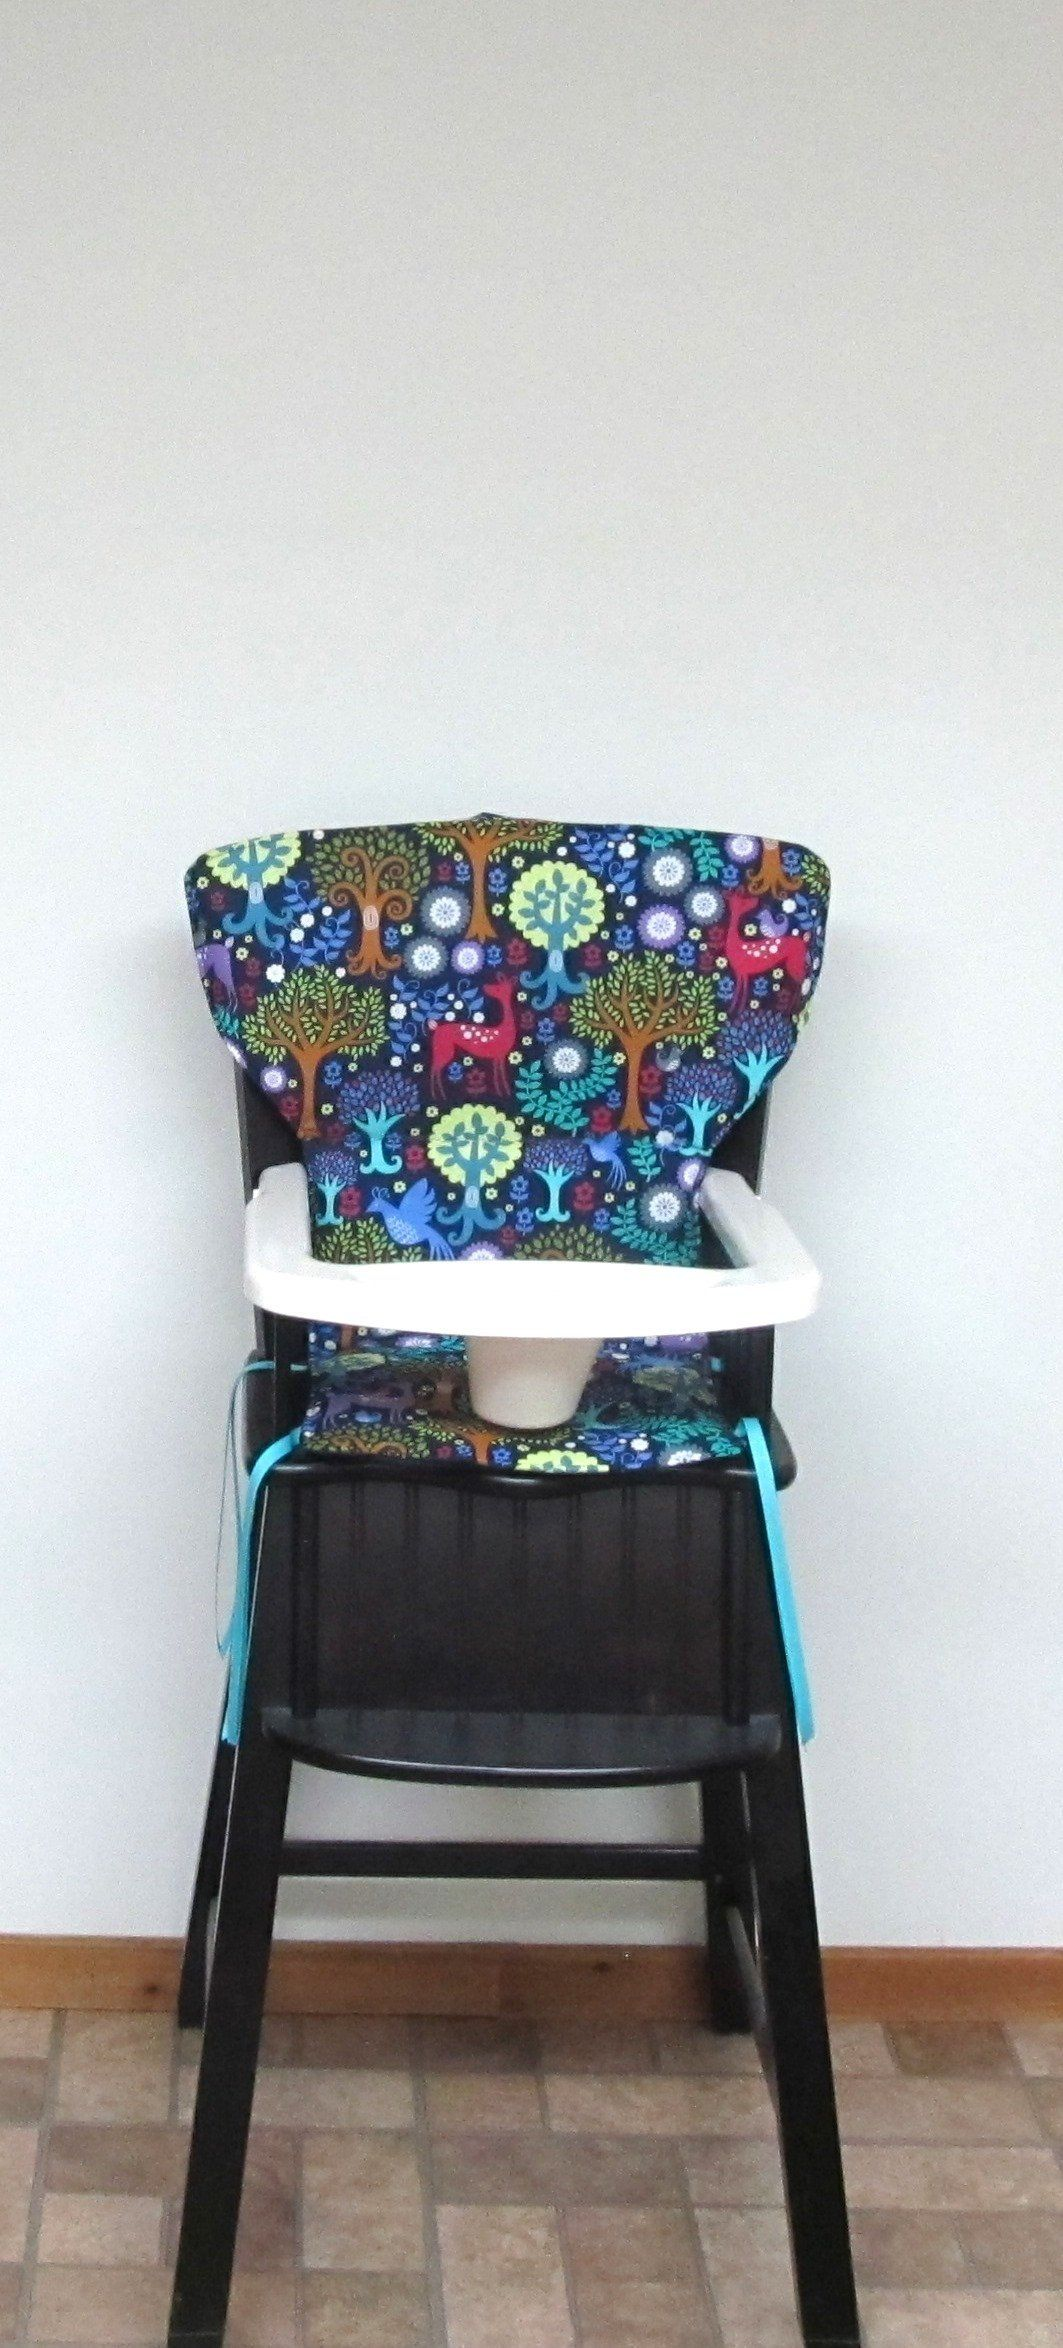 Eddie Bauer High Chair Cover Newport Style Baby Accessory